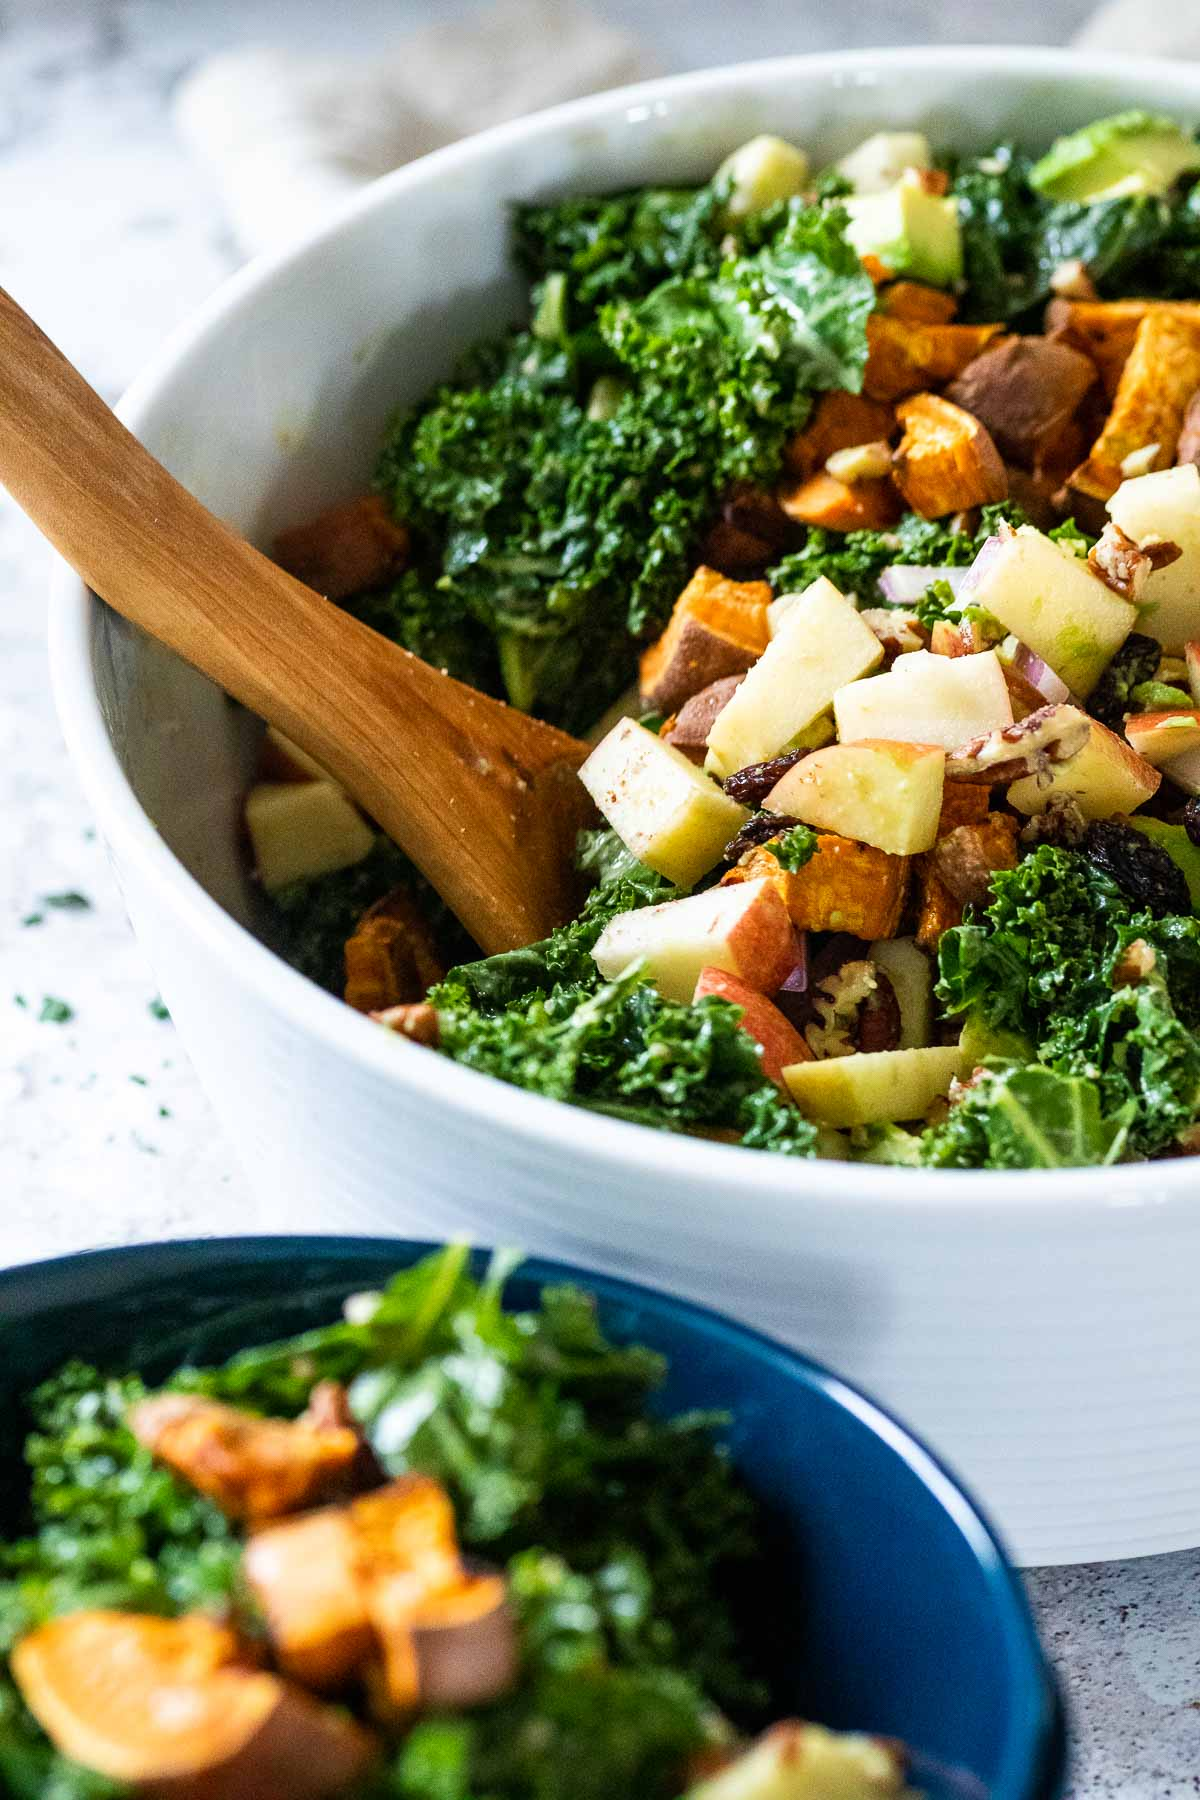 In focus one big bowl of kale salad with a blurred blue bowl in front